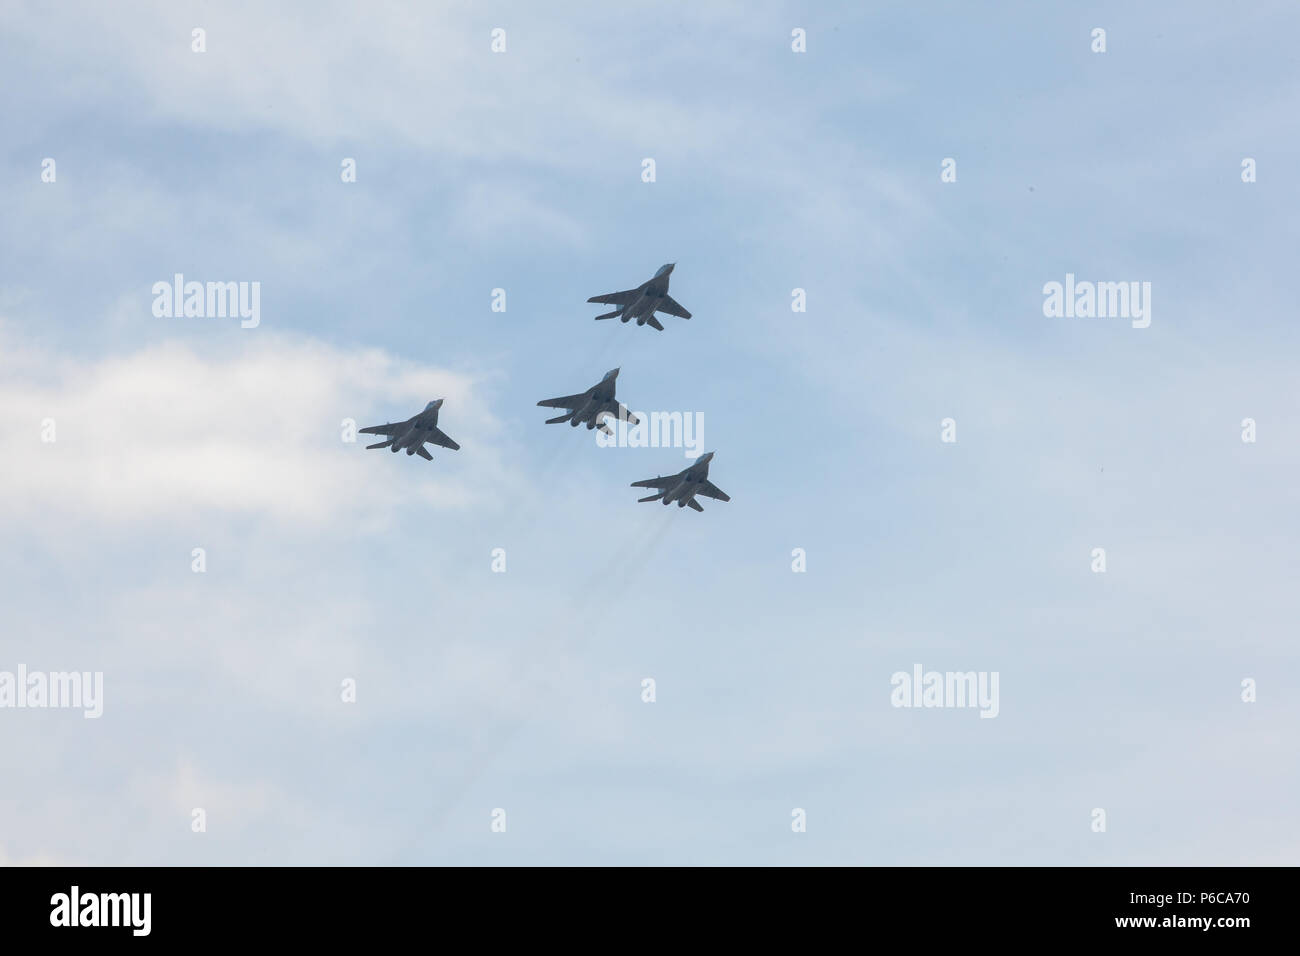 airplane, military aircraft Stock Photo